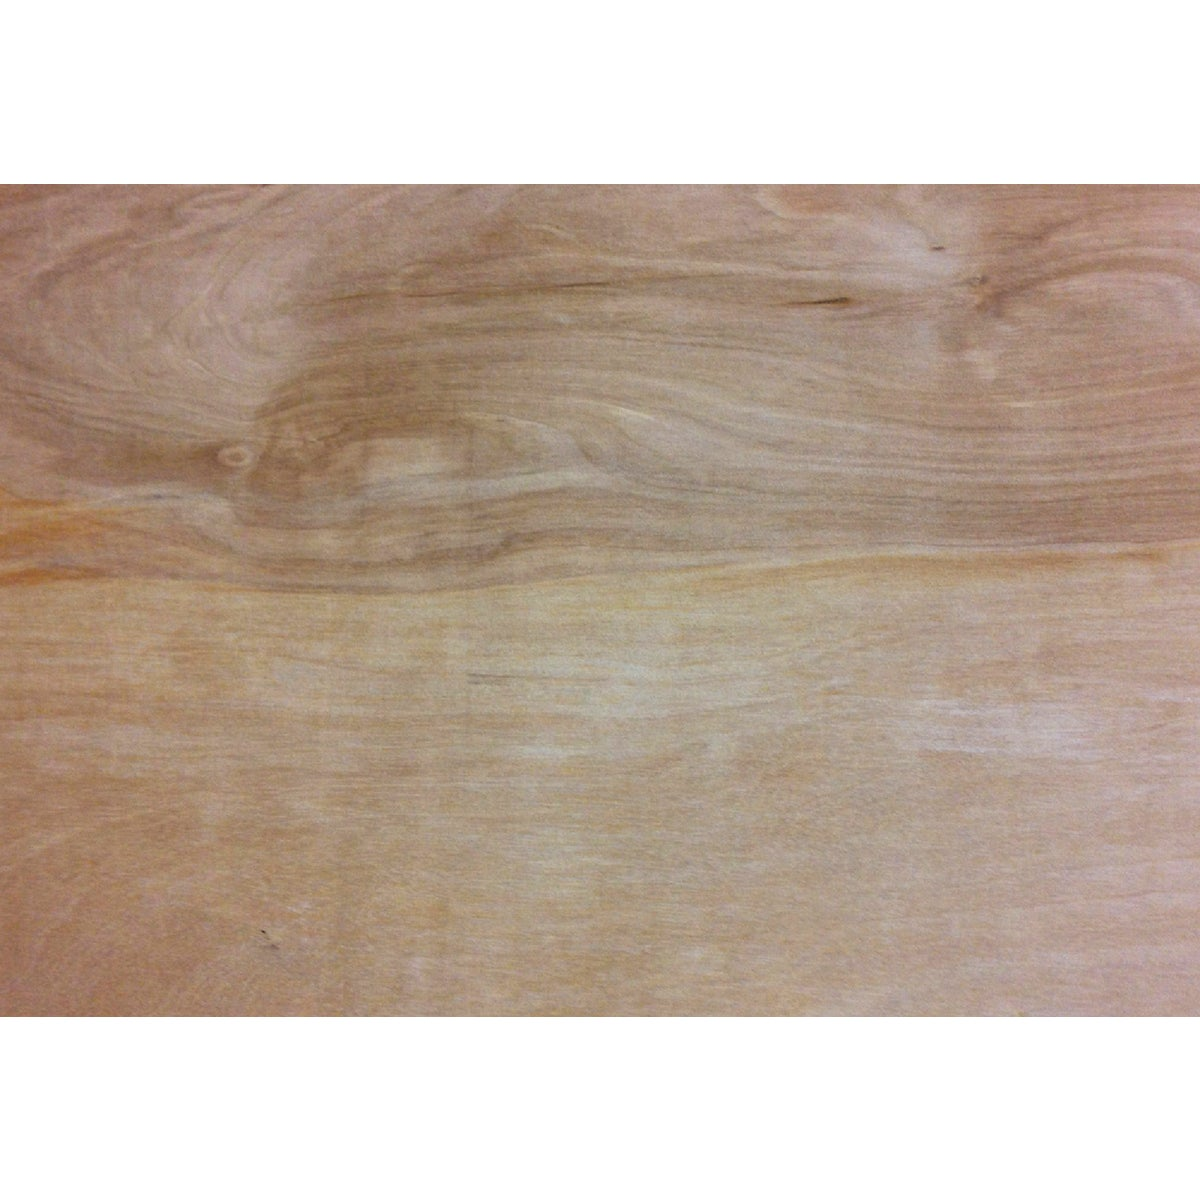 "3/8"" 24X48 BIRCH PLYWOOD - 146230 by Ufpi Lbr & Treated"